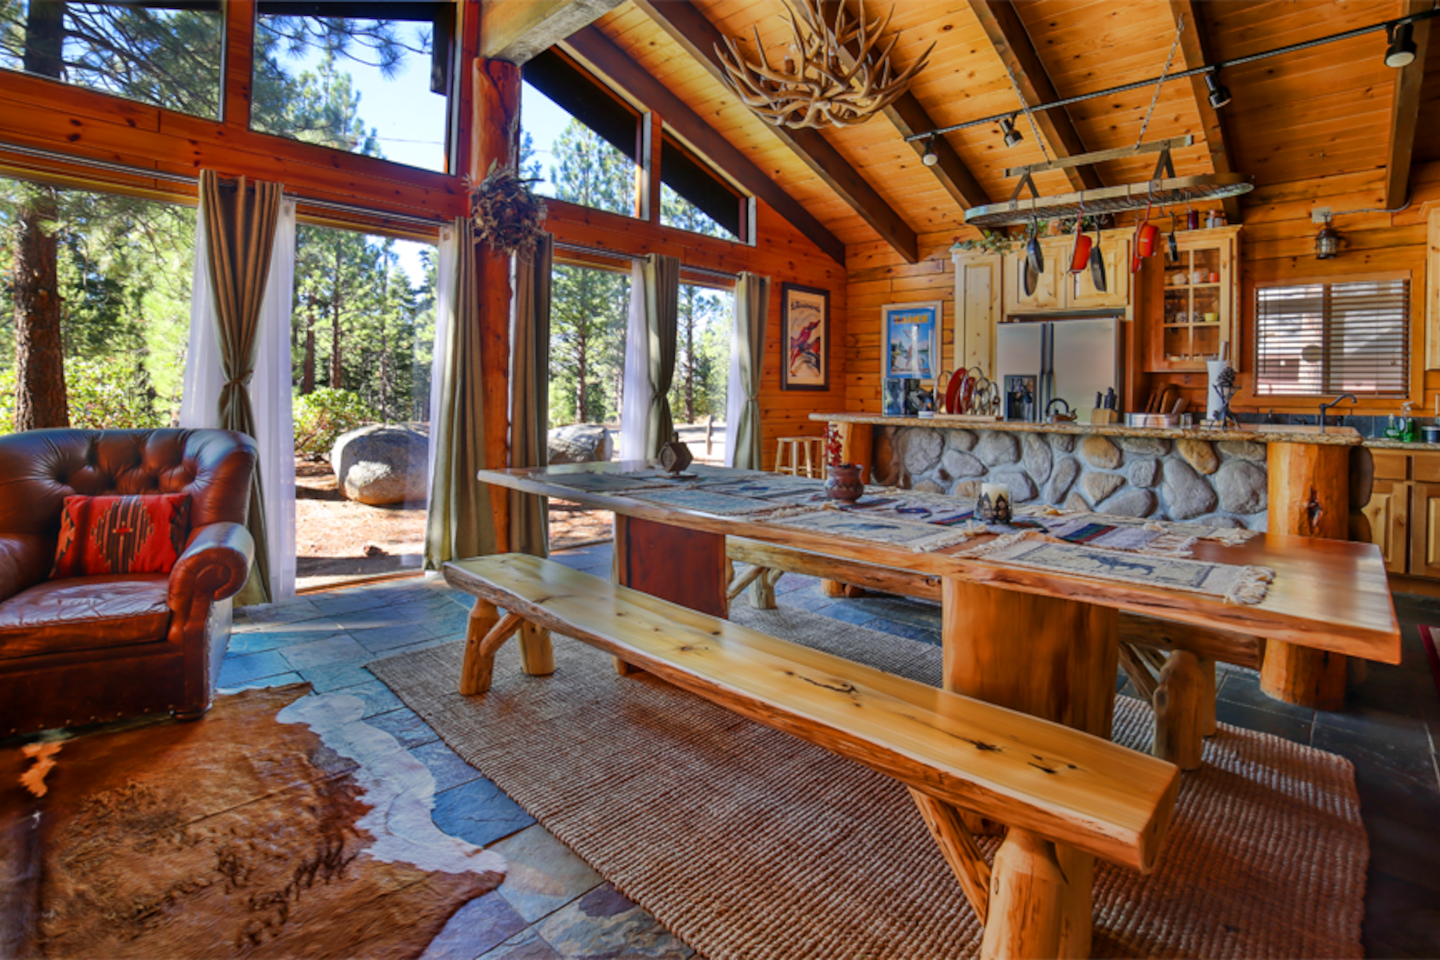 The Lake Tahoe Chalet Airbnb